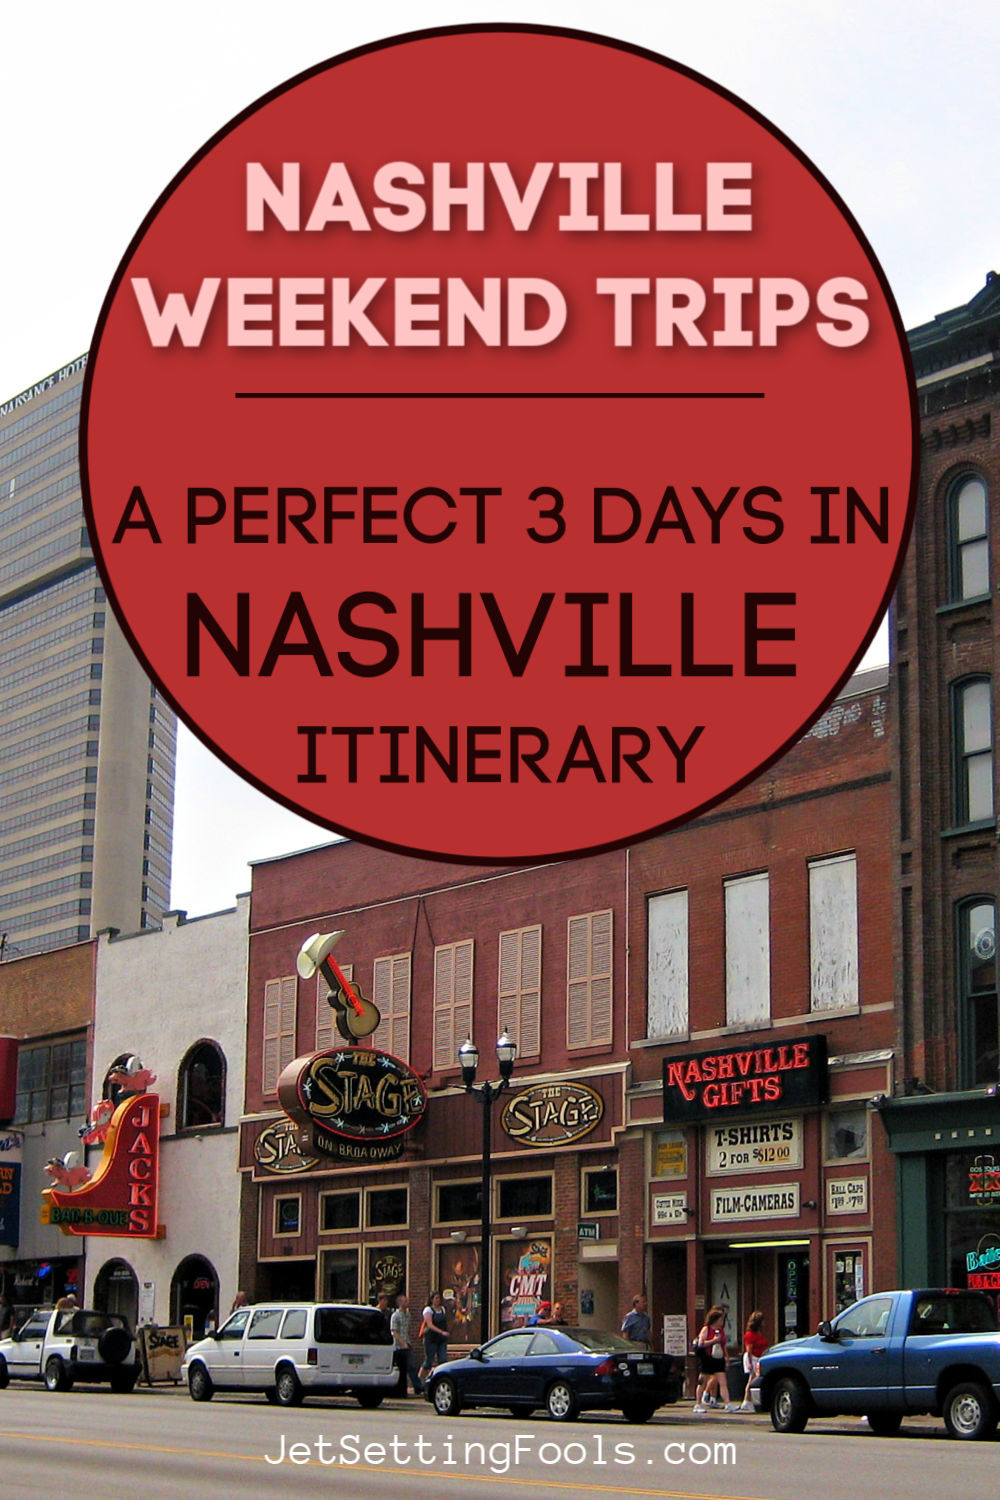 3 Days in Nashville Itinerary by JetSettingFools.com